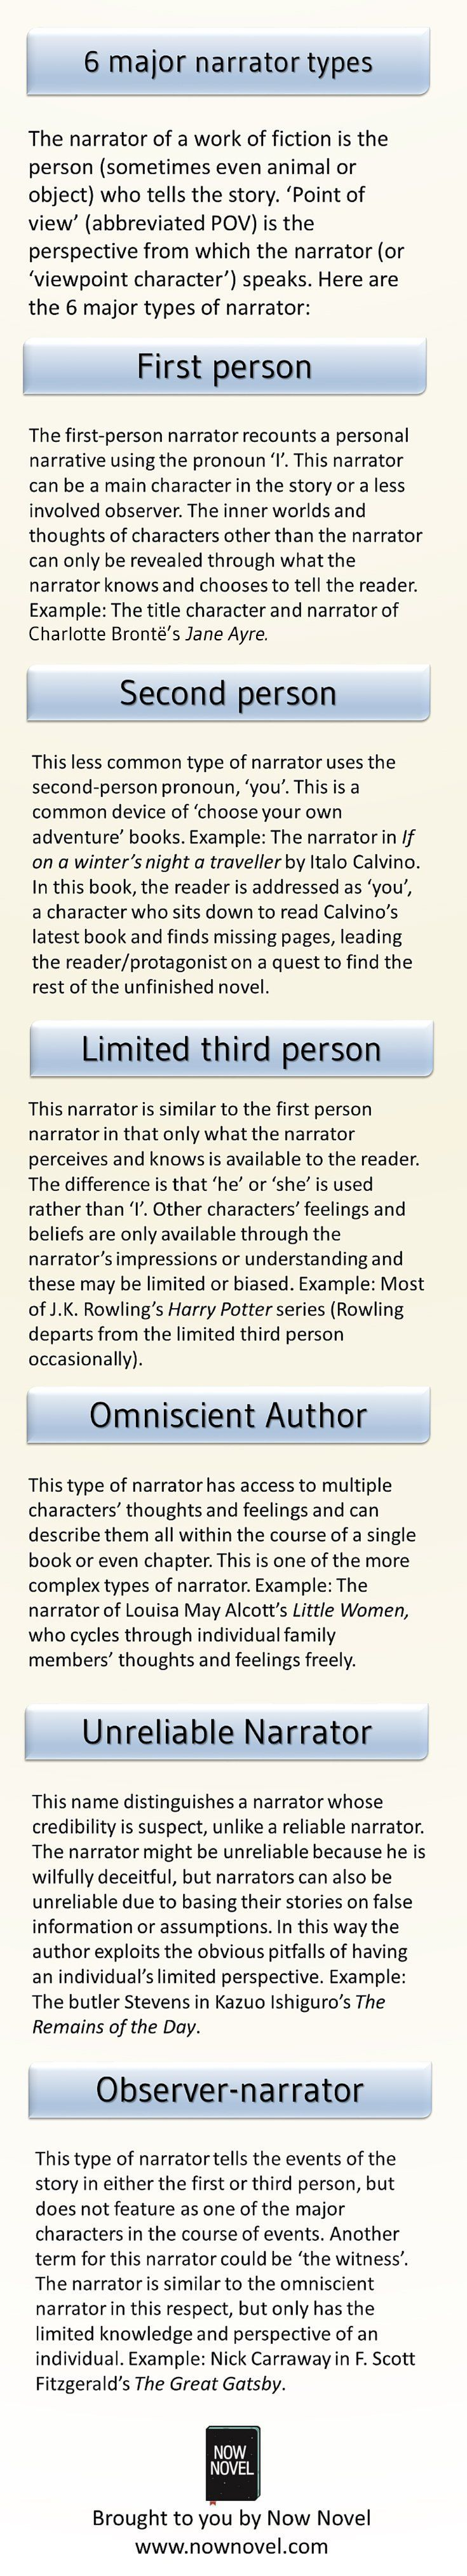 major components of a narrative essay Elements of a narrative: setting - where the story takes place usually every scene has achange of setting.